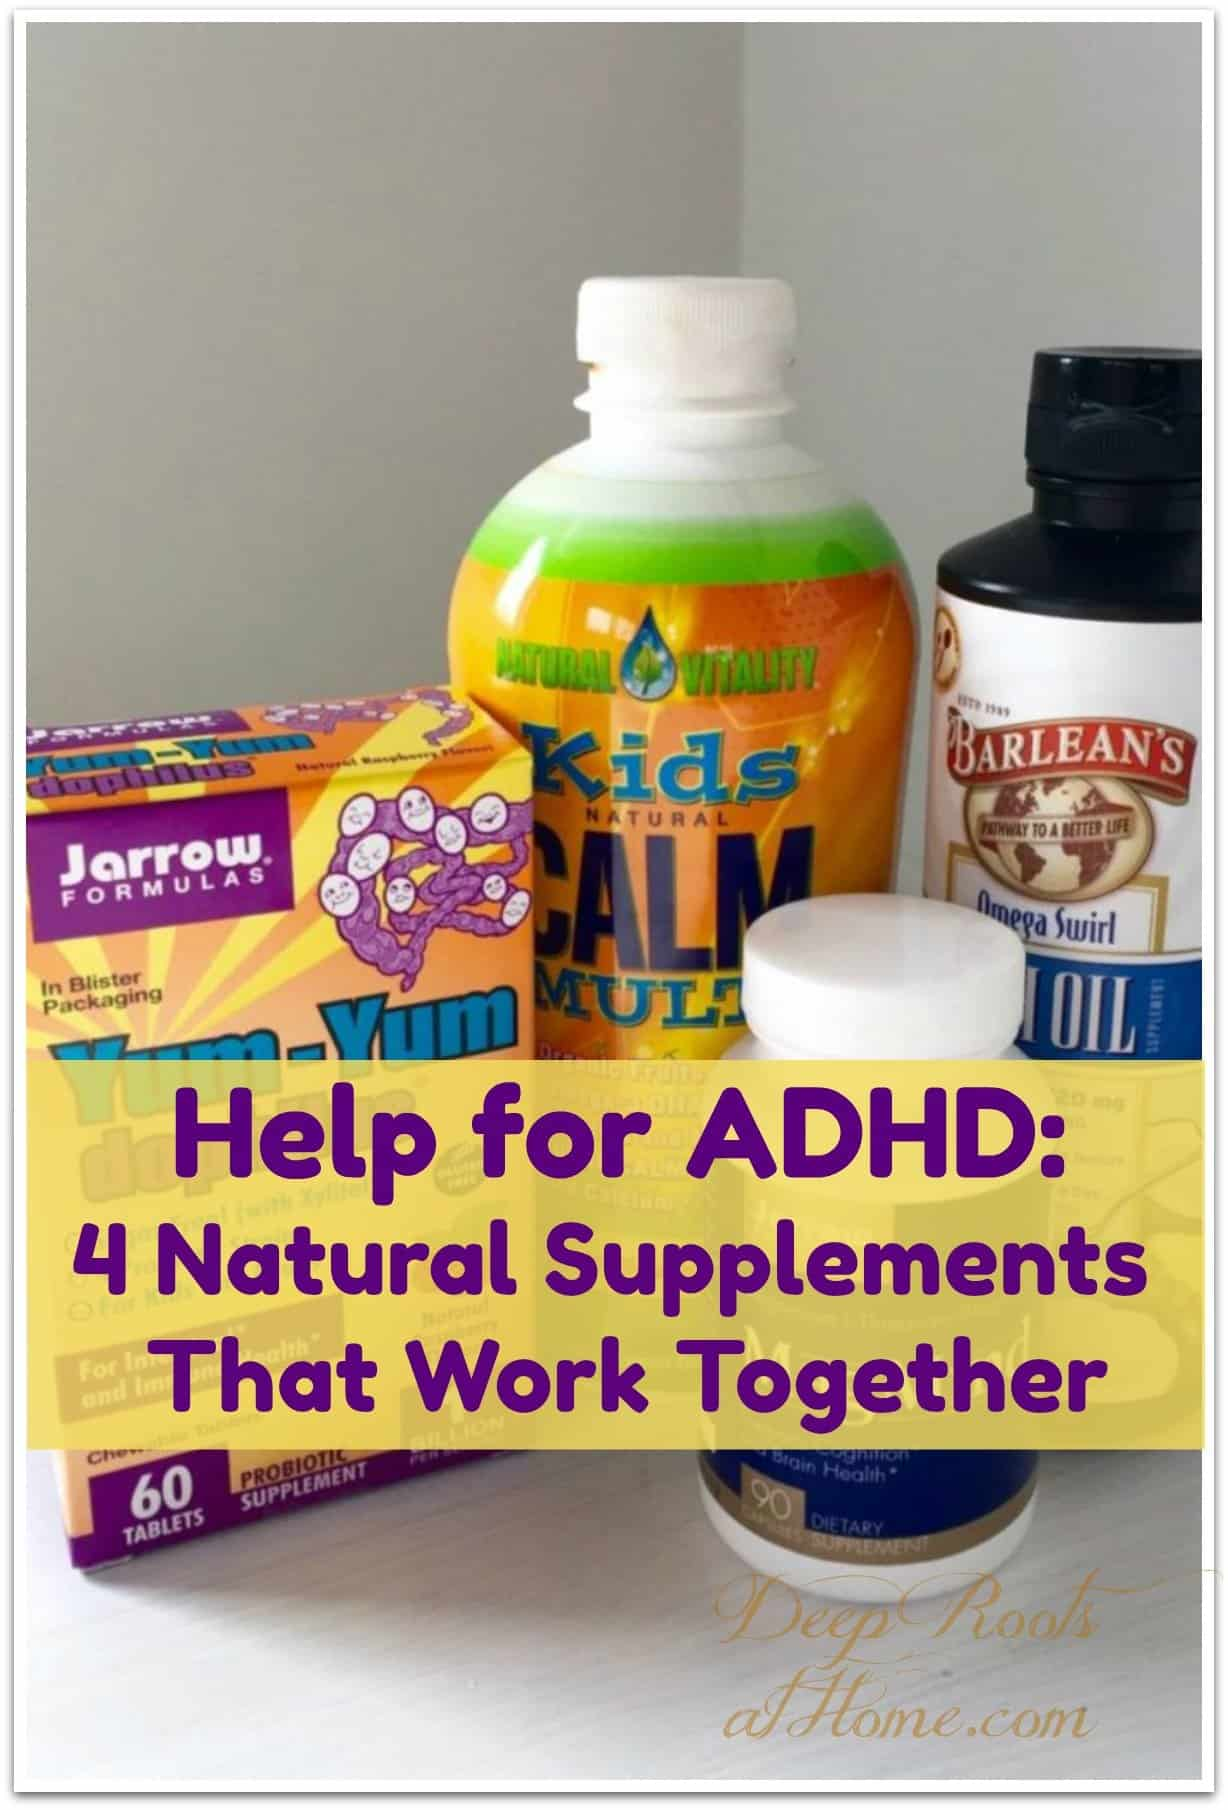 Help for ADHD: Four Natural Supplements That Work Together. 4 supplements that calm ADHD